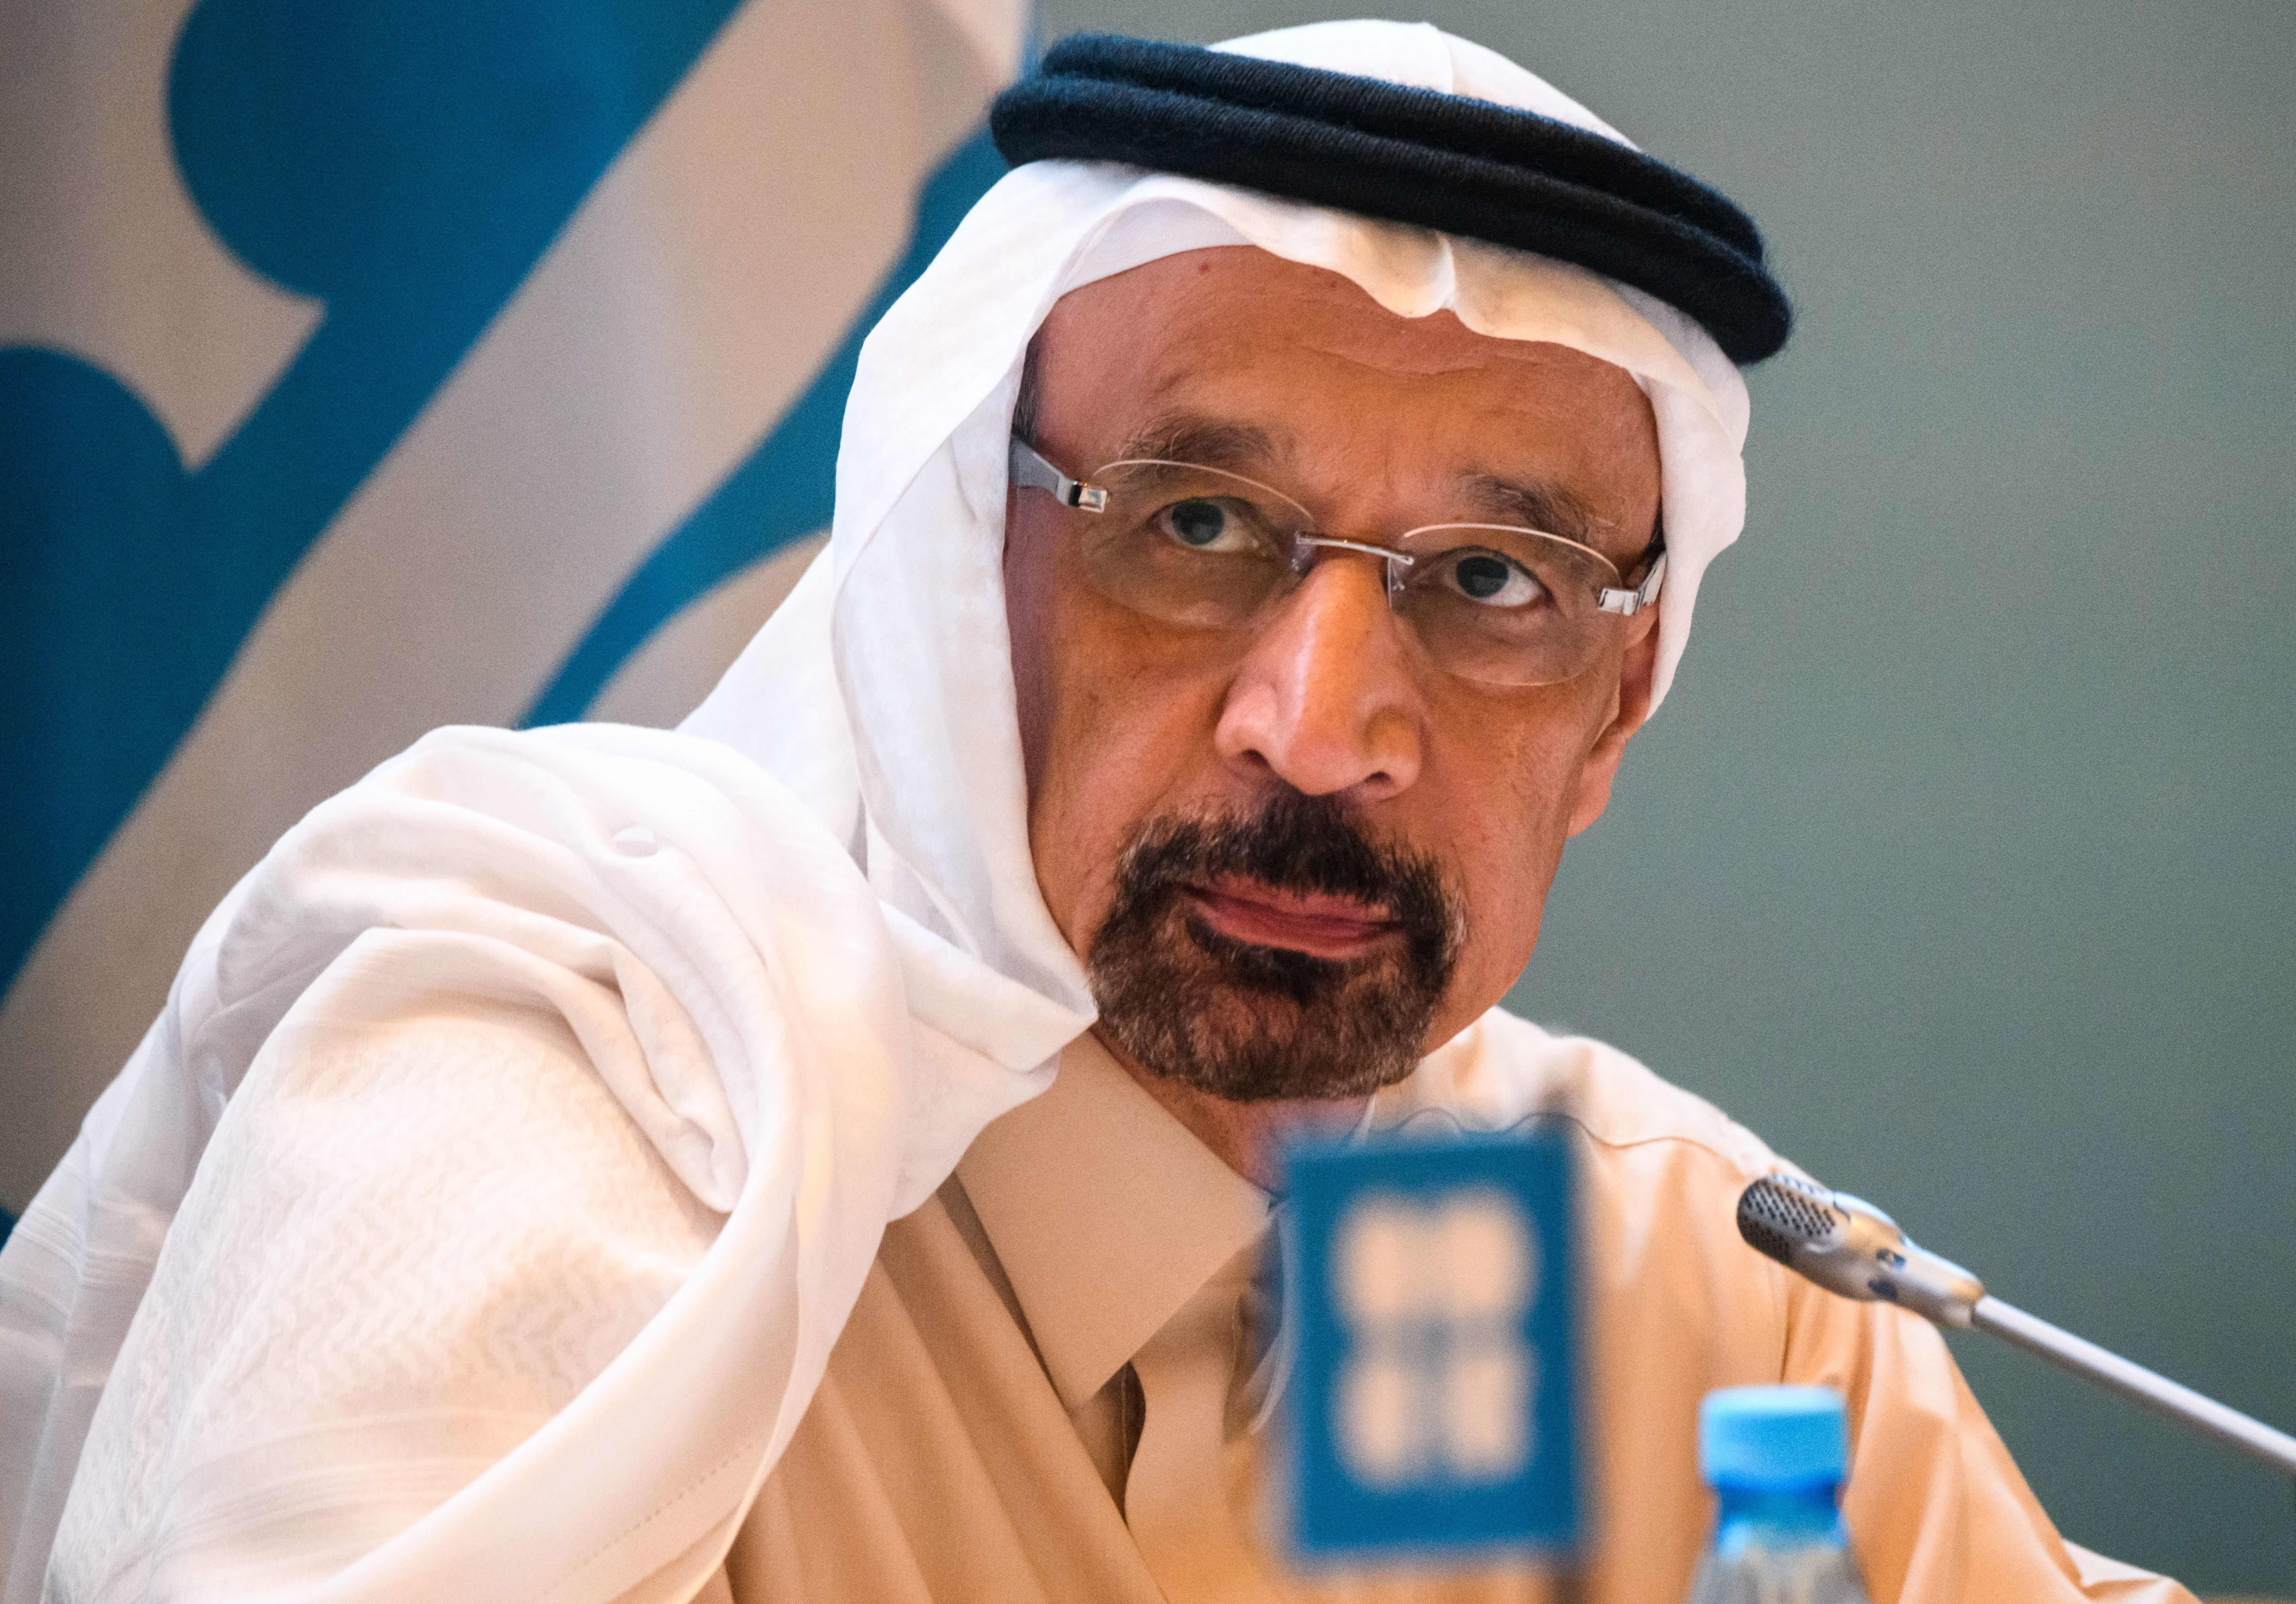 Saudi Arabia's Energy Minister Khalid al-Falih attends a press conference at the end of the 13th meeting of the Joint Ministerial Monitoring Committee (JMMC) of OPEC and non- OPEC countries in Baku on March 18, 2019.